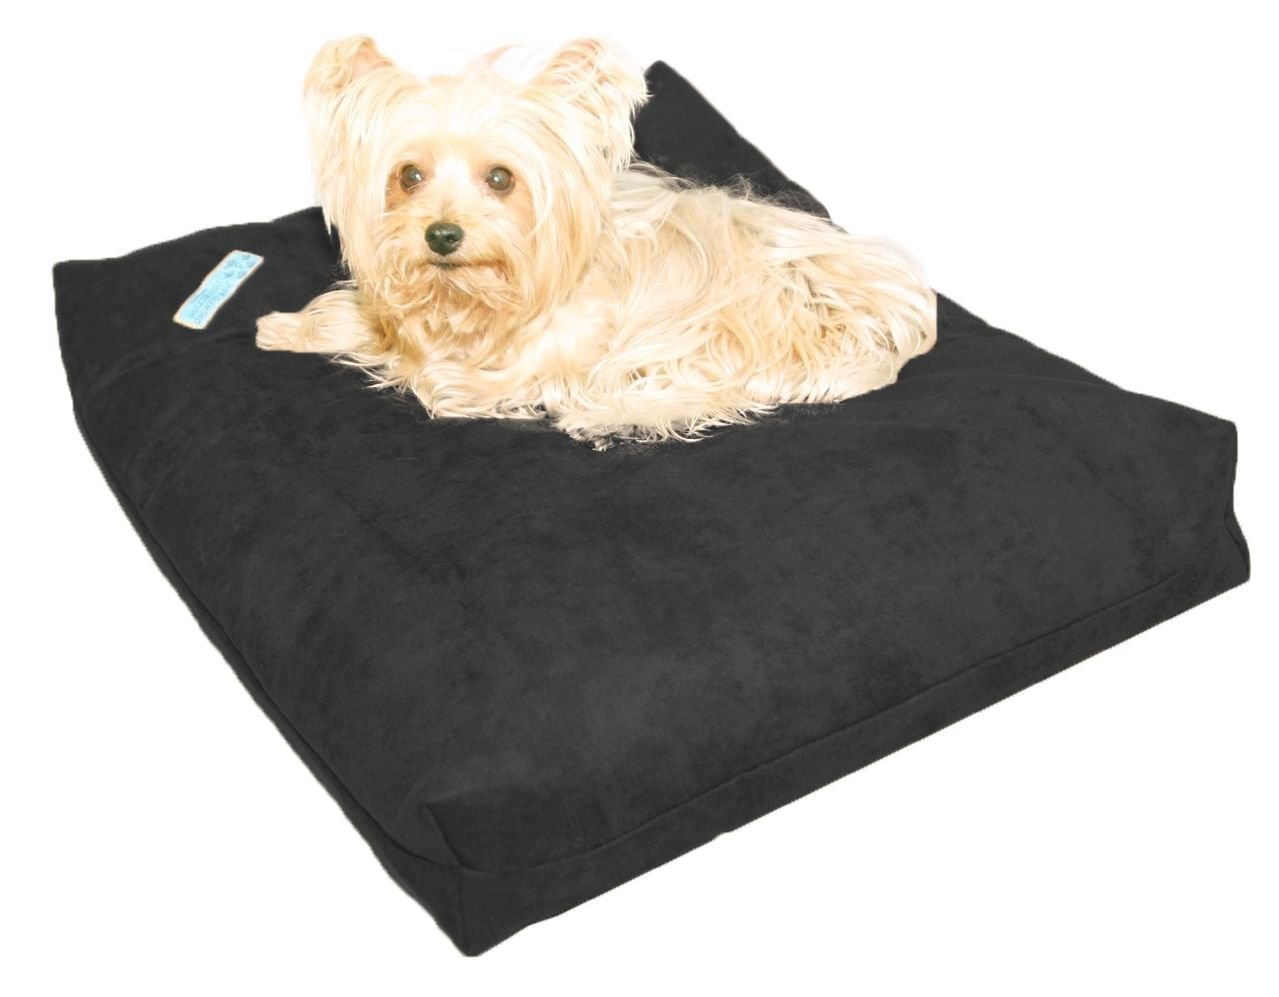 Five Diamond Collection Shredded Memory Foam Orthopedic Dog Bed, Removable Washable Passion Suede Cover, Water Proof Inner Fabric, Double Sided, Made in USA (Charcoal,for Small Breed Dogs, 25 x 20)